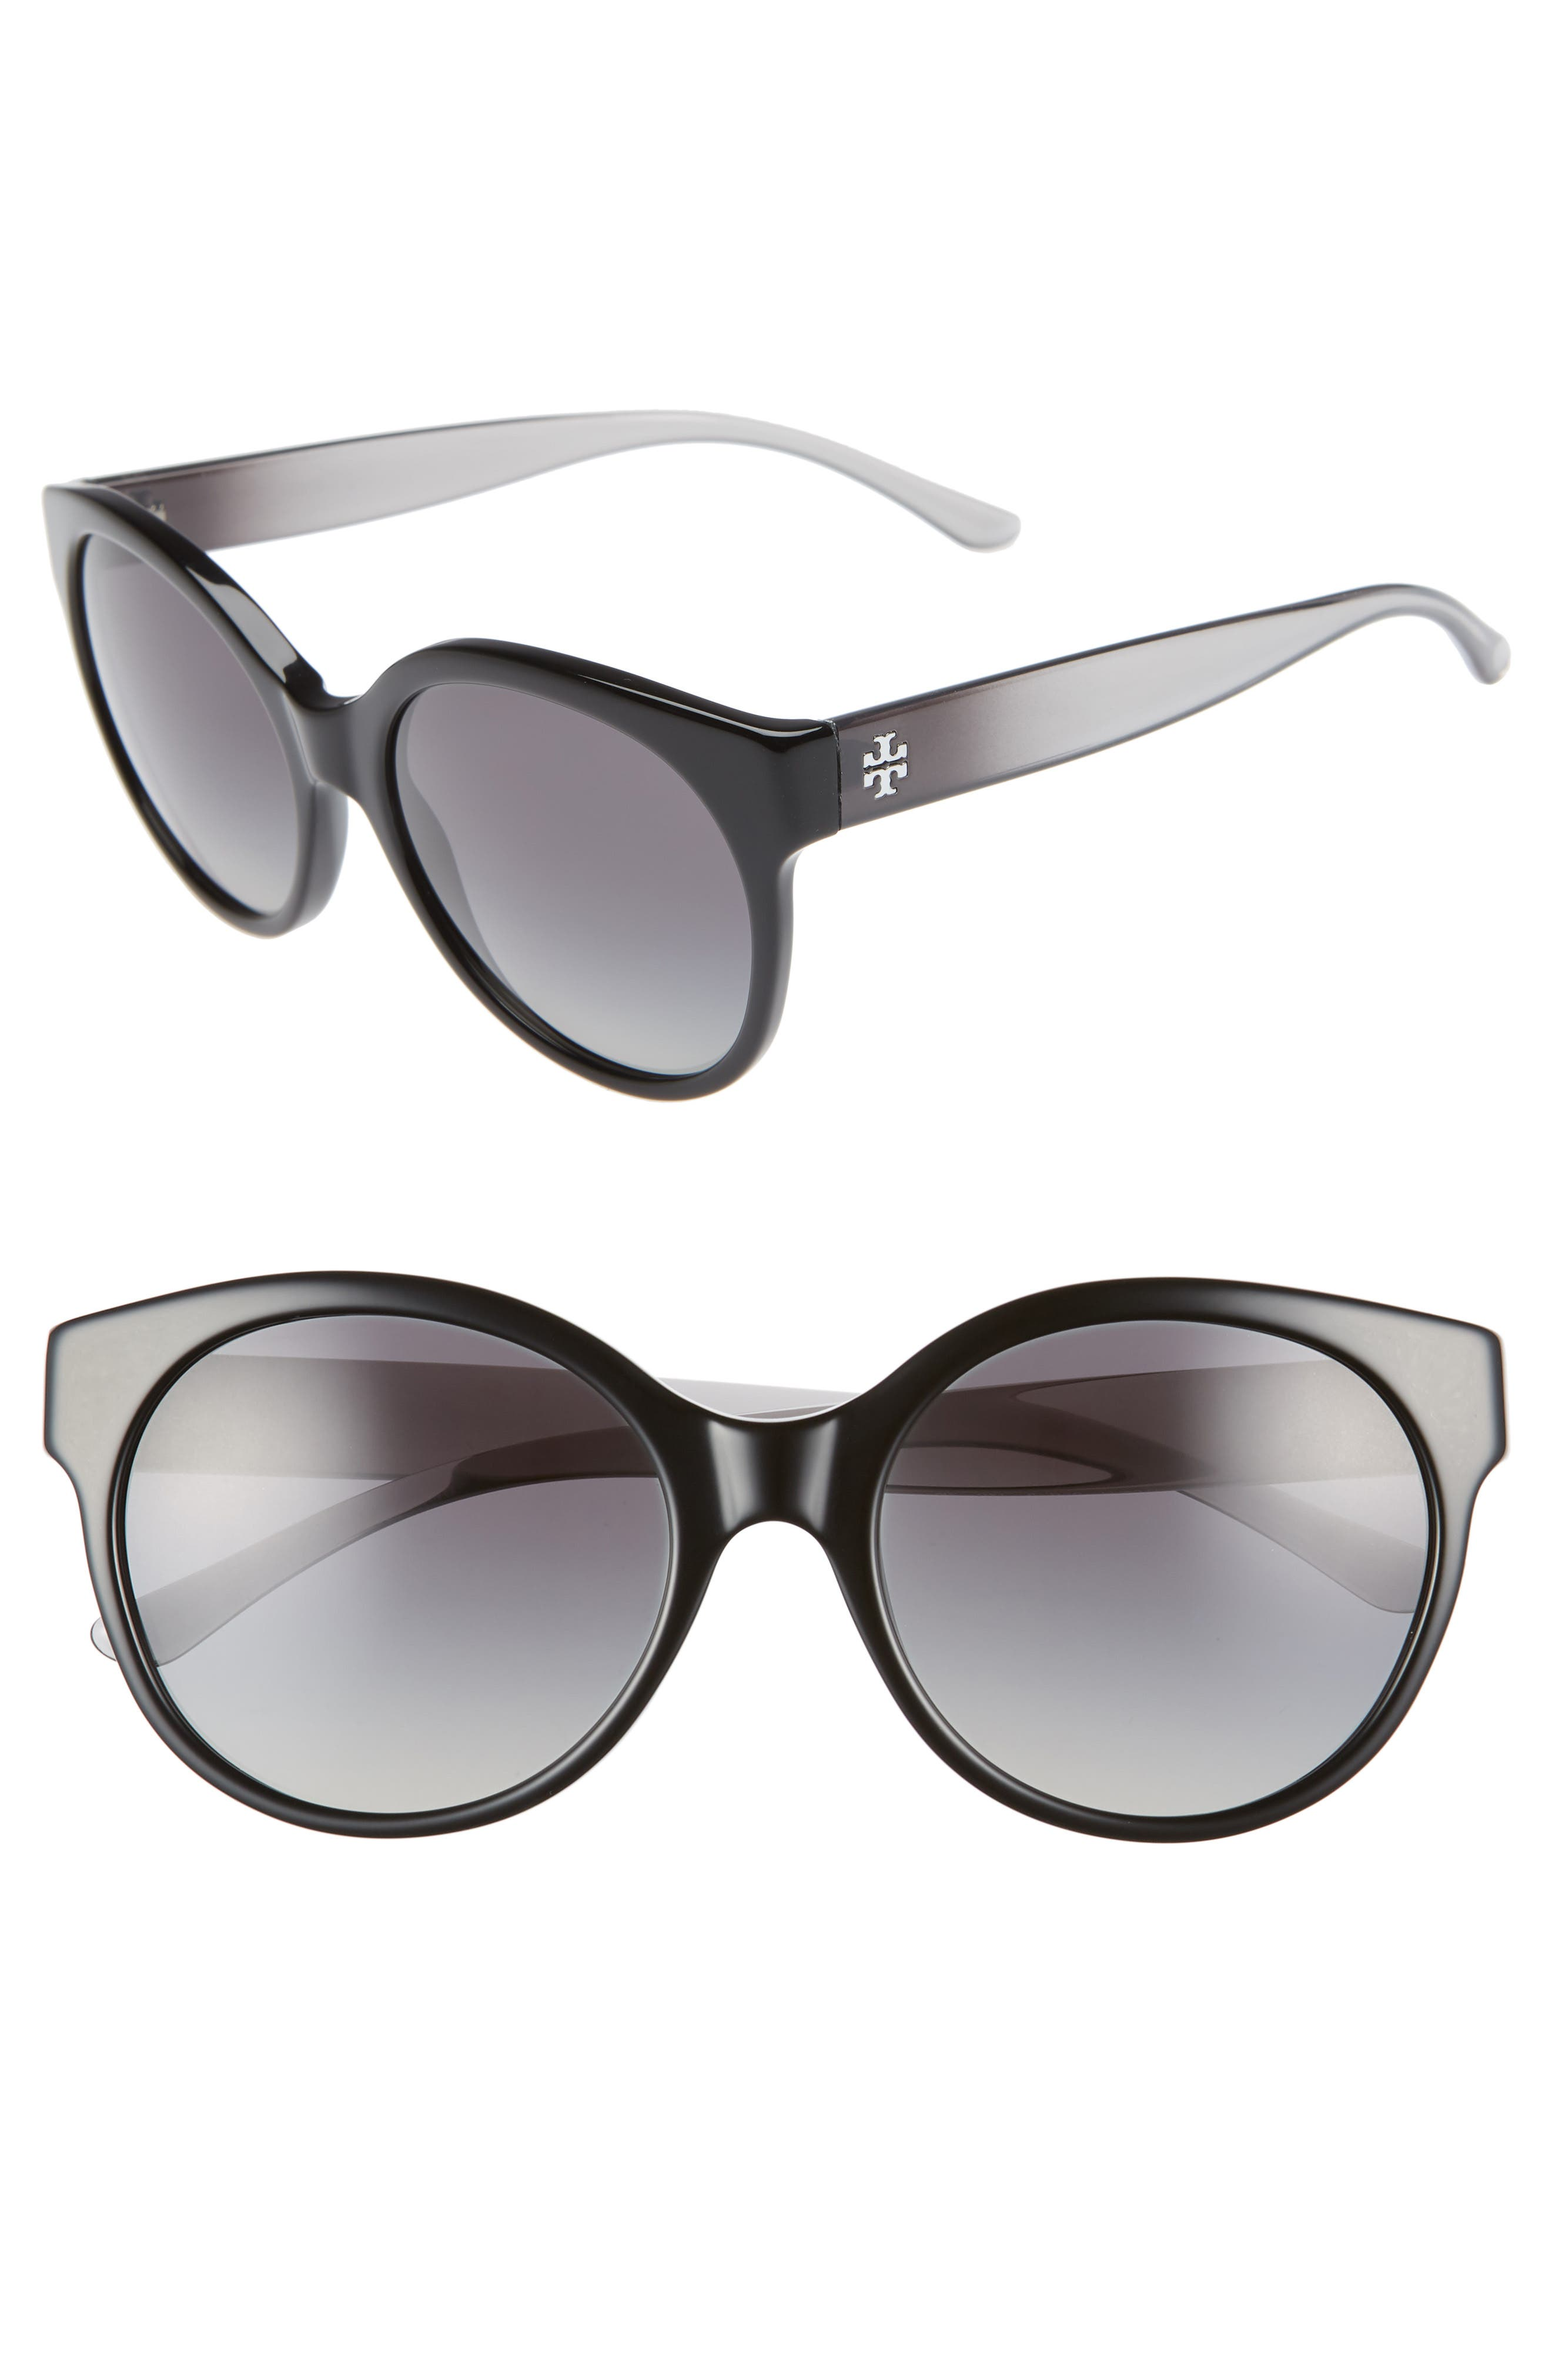 TORY BURCH, Stacked T 55mm Round Sunglasses, Main thumbnail 1, color, BLACK GRADIENT